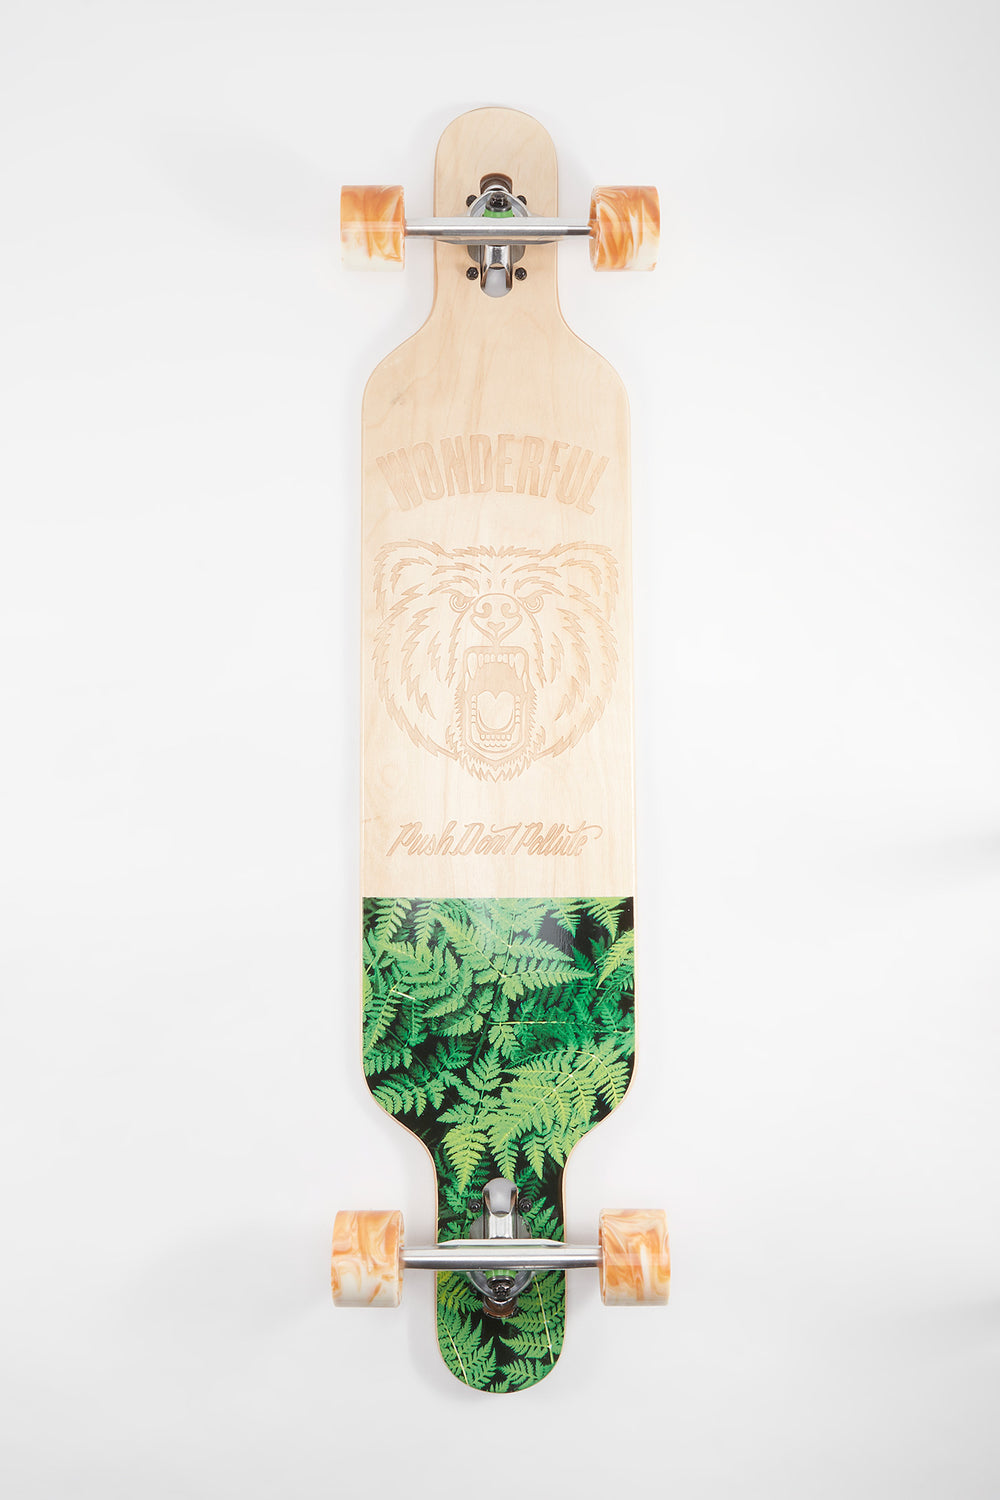 Longboard Push, Don't Pollute Wonderful 41.75